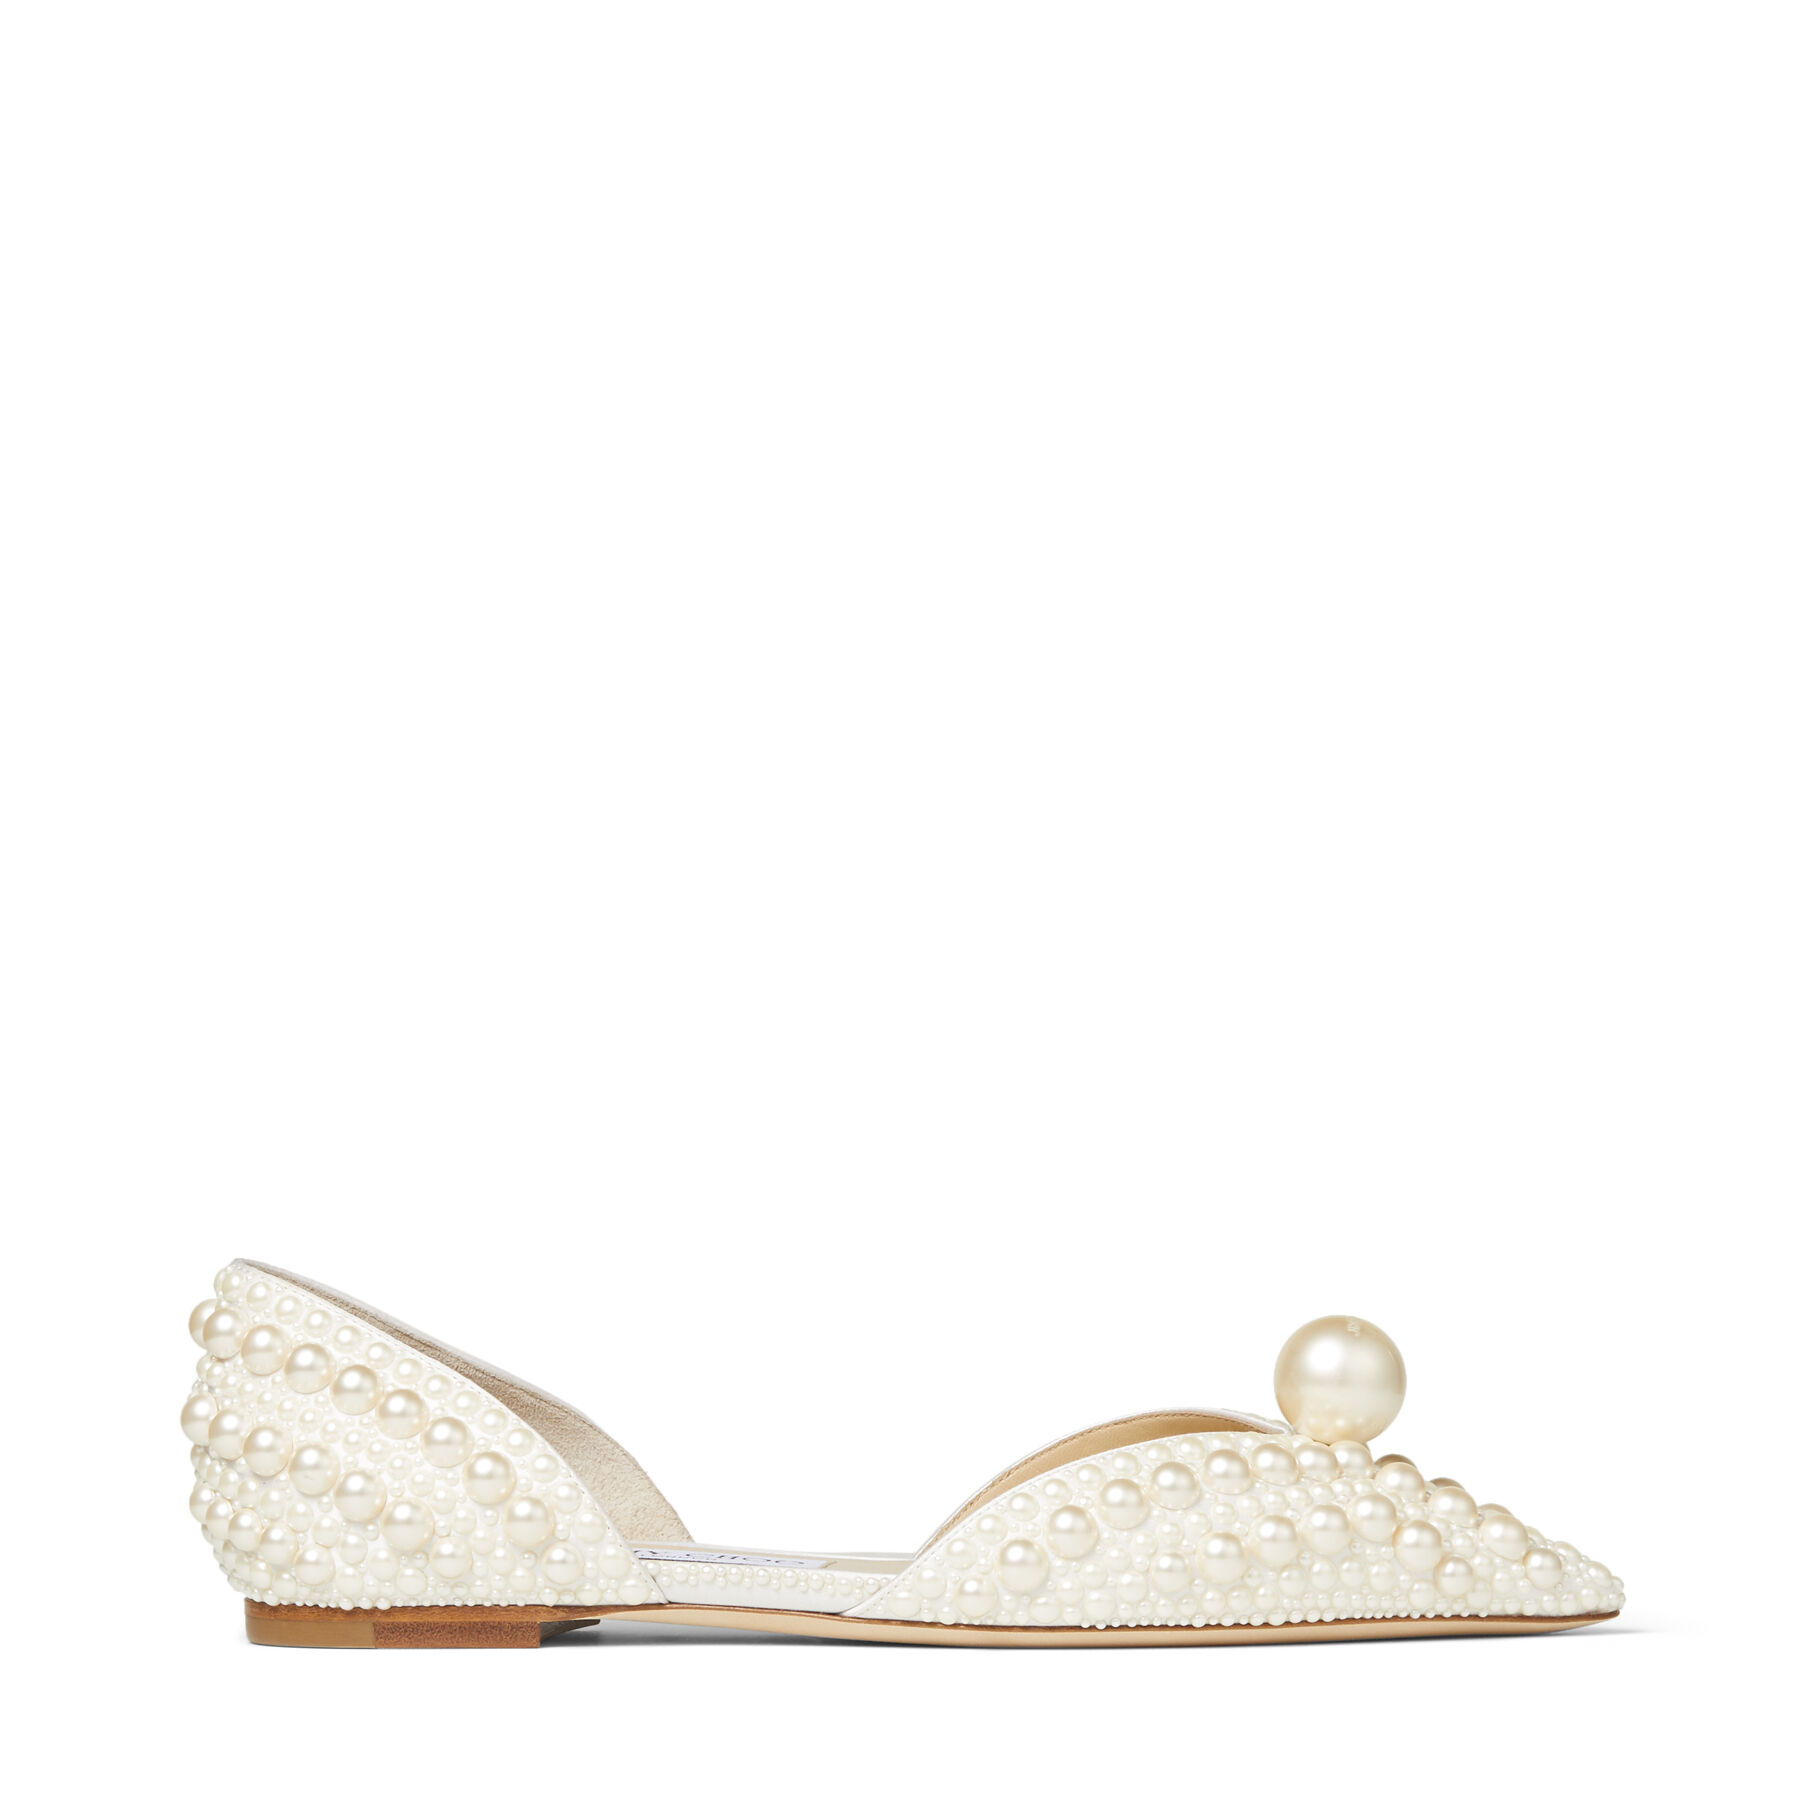 SABINE FLAT - White Satin Flats with All-Over Pearl Embellishment